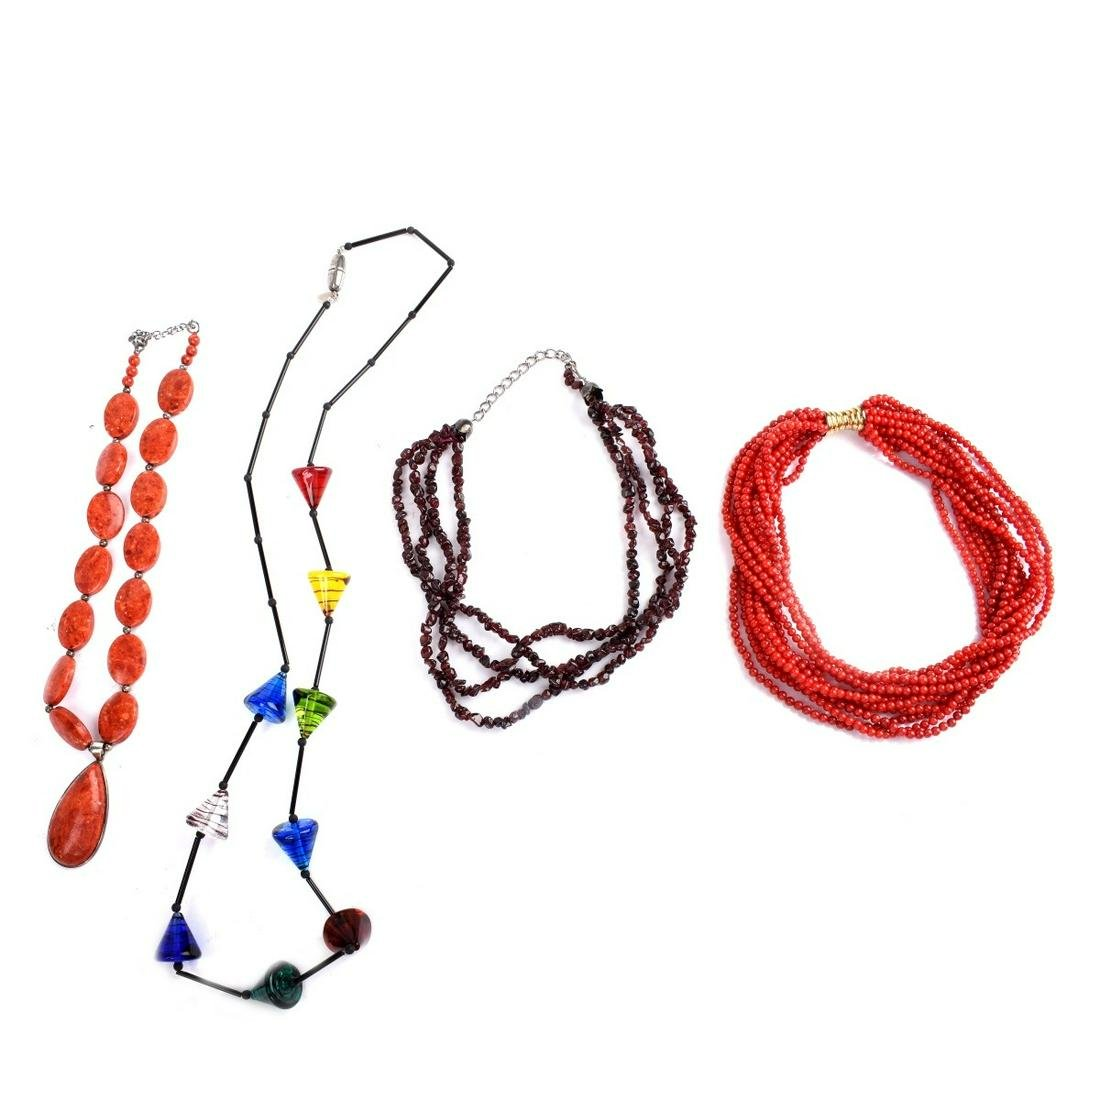 Four Bead Necklaces